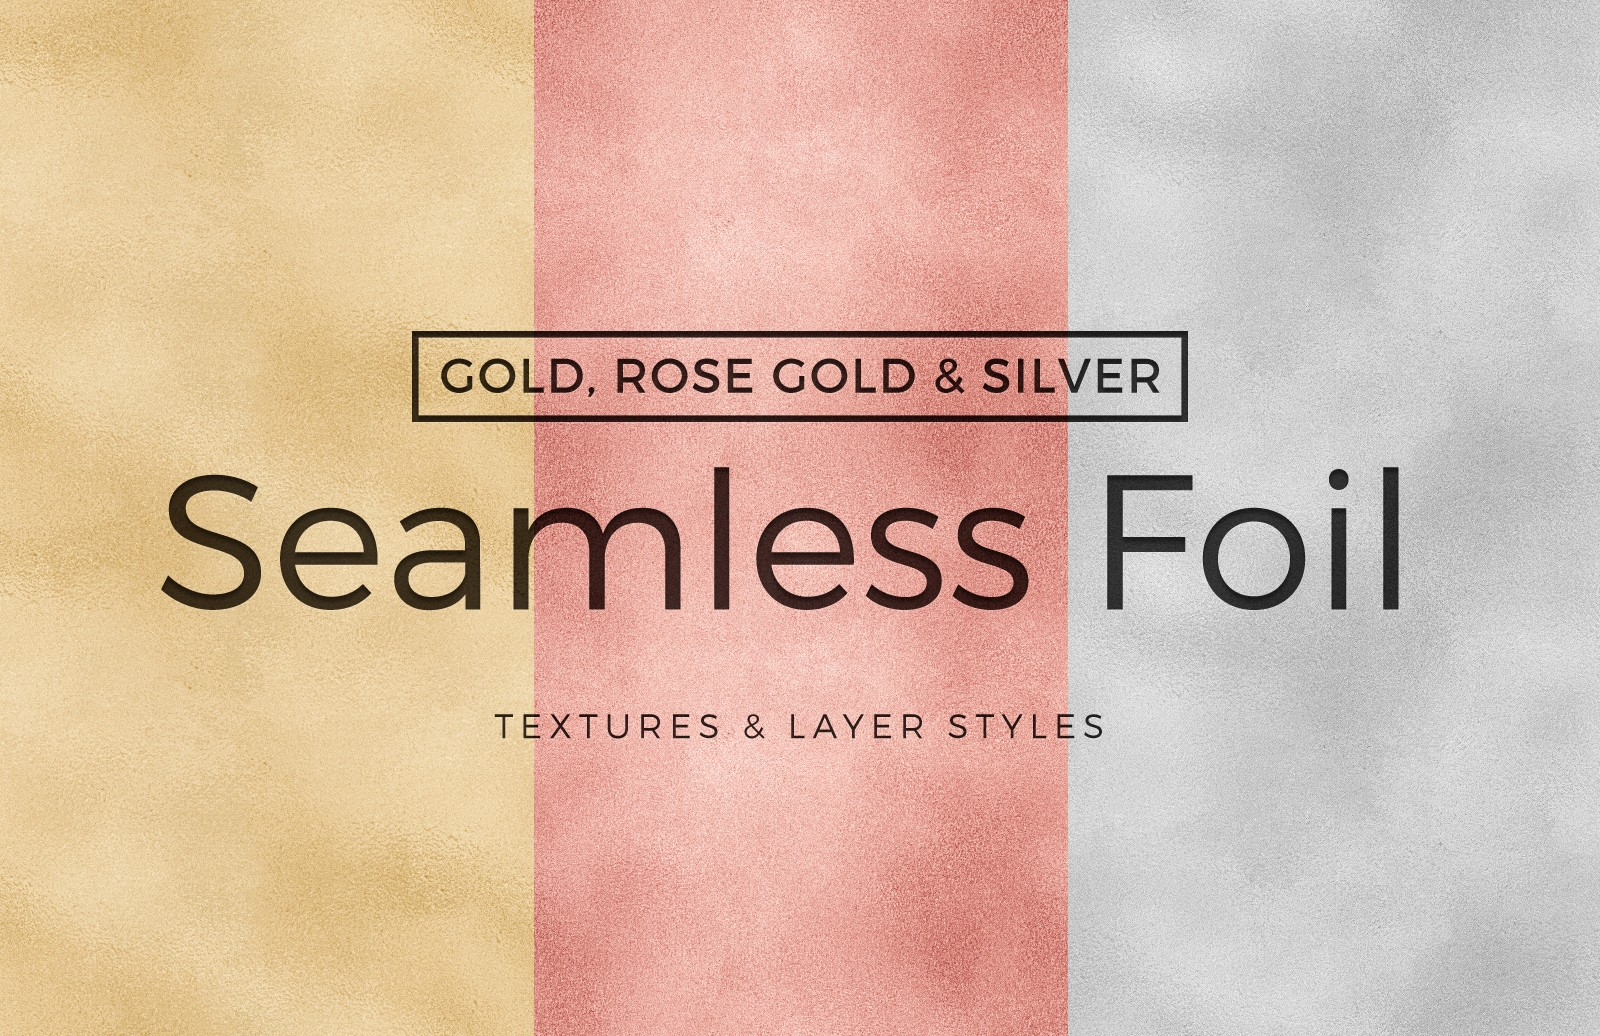 Seamless Foil Textures & Layer Styles